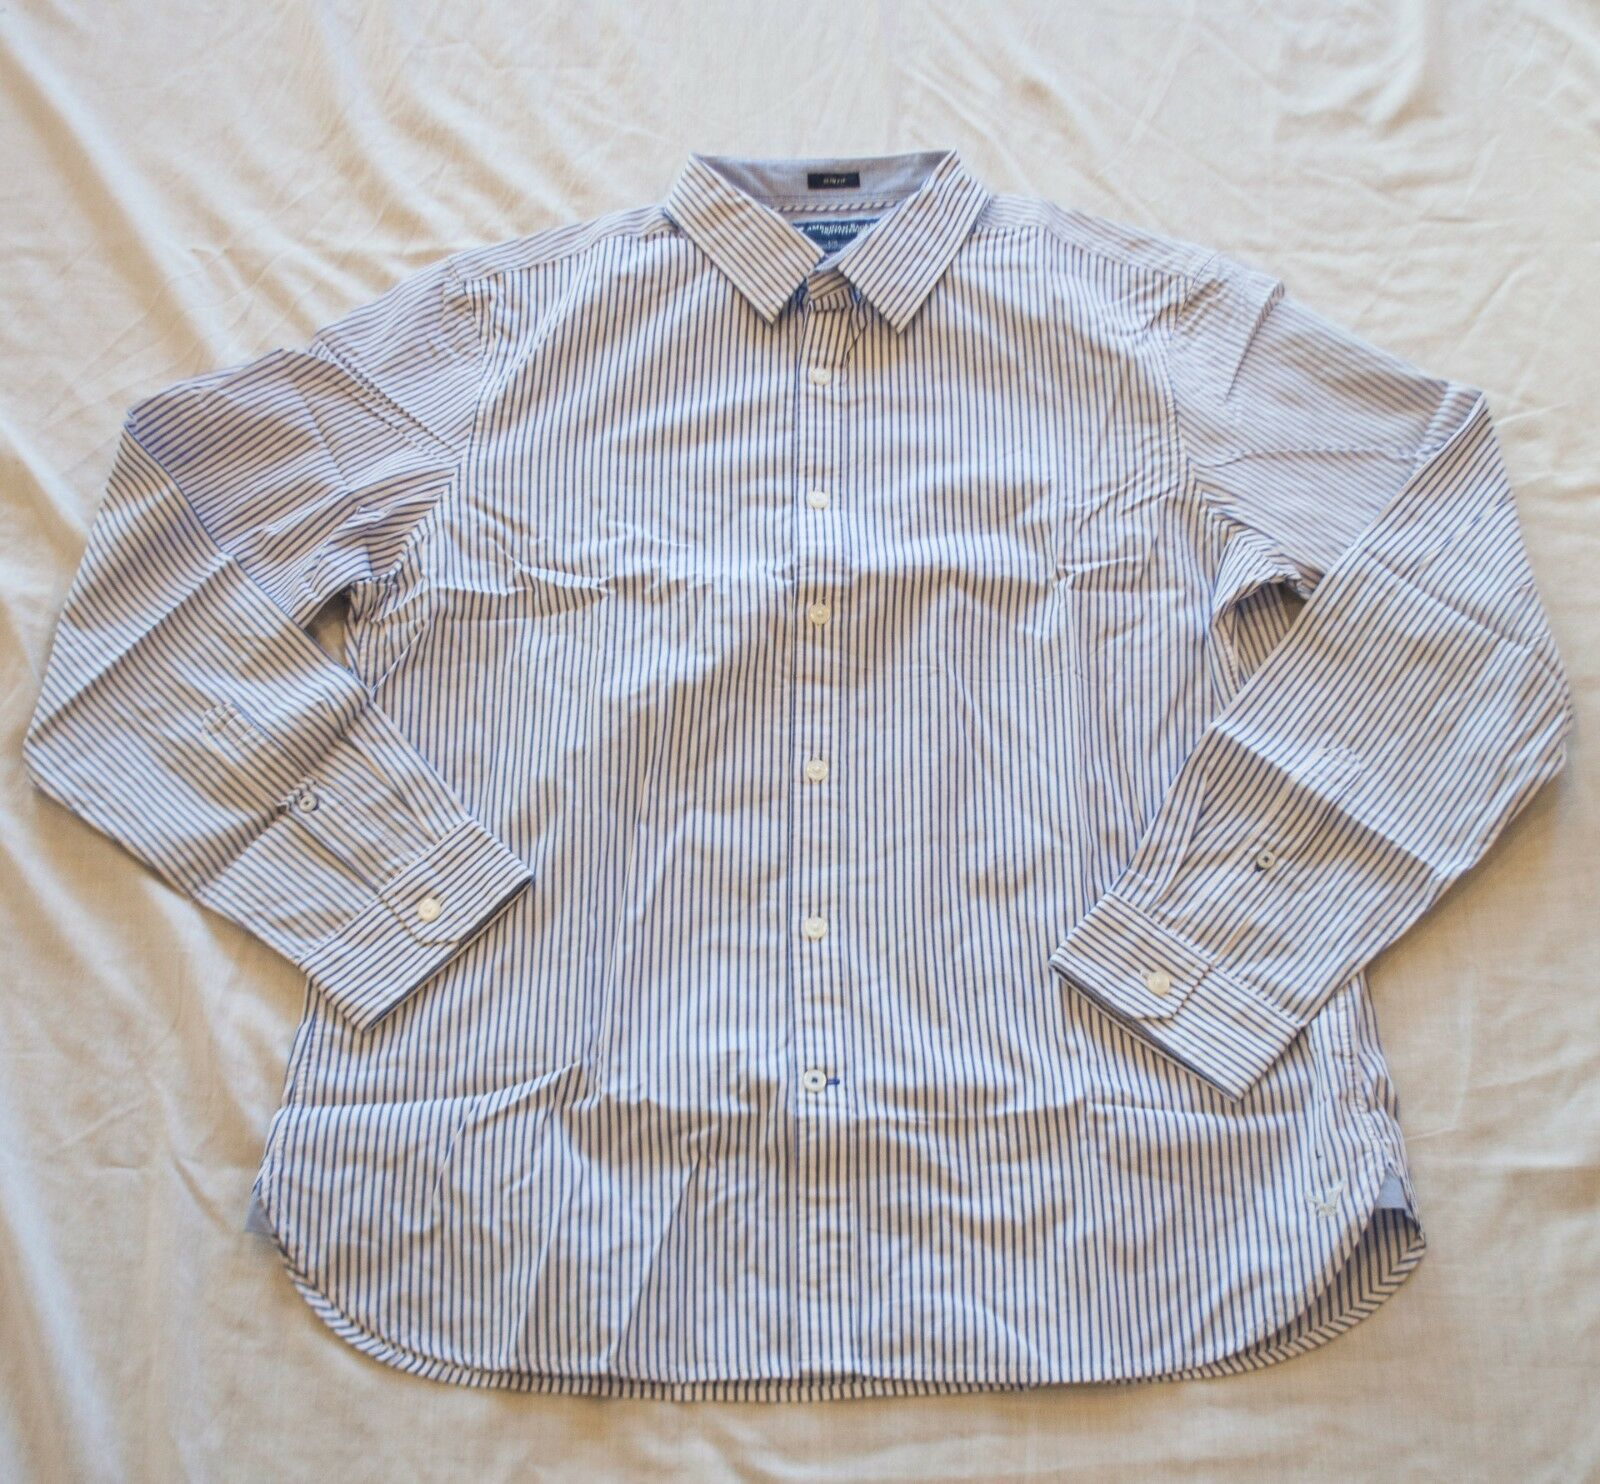 NWT Mens American Eagle AE bluee and White Striped Button Up Shirt Size Large